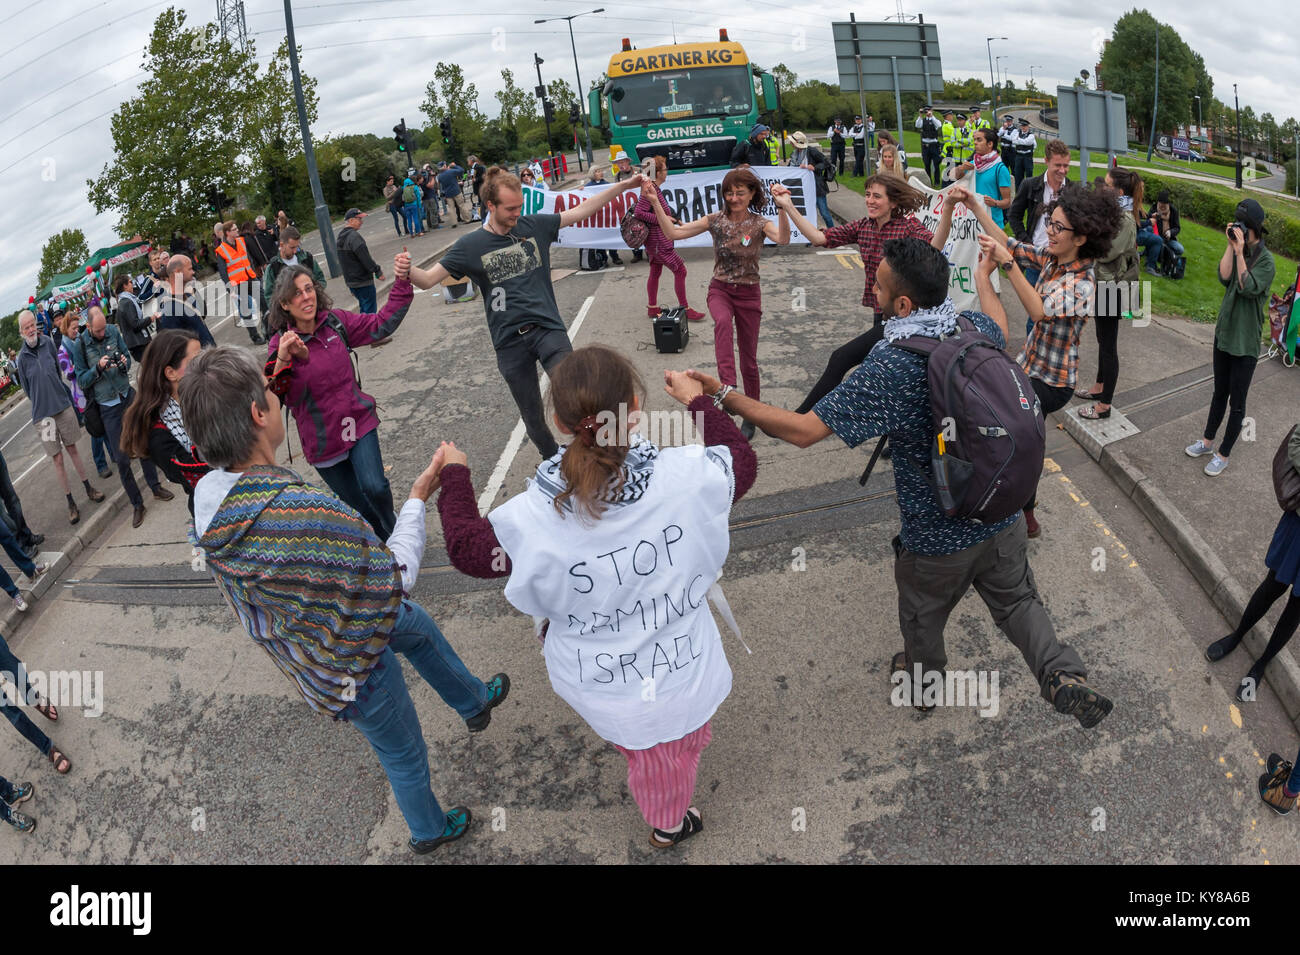 Dabke dancing on the road in front of a stopped lorry at 'Stop Arming Israel', the first day of a week of action Stock Photo